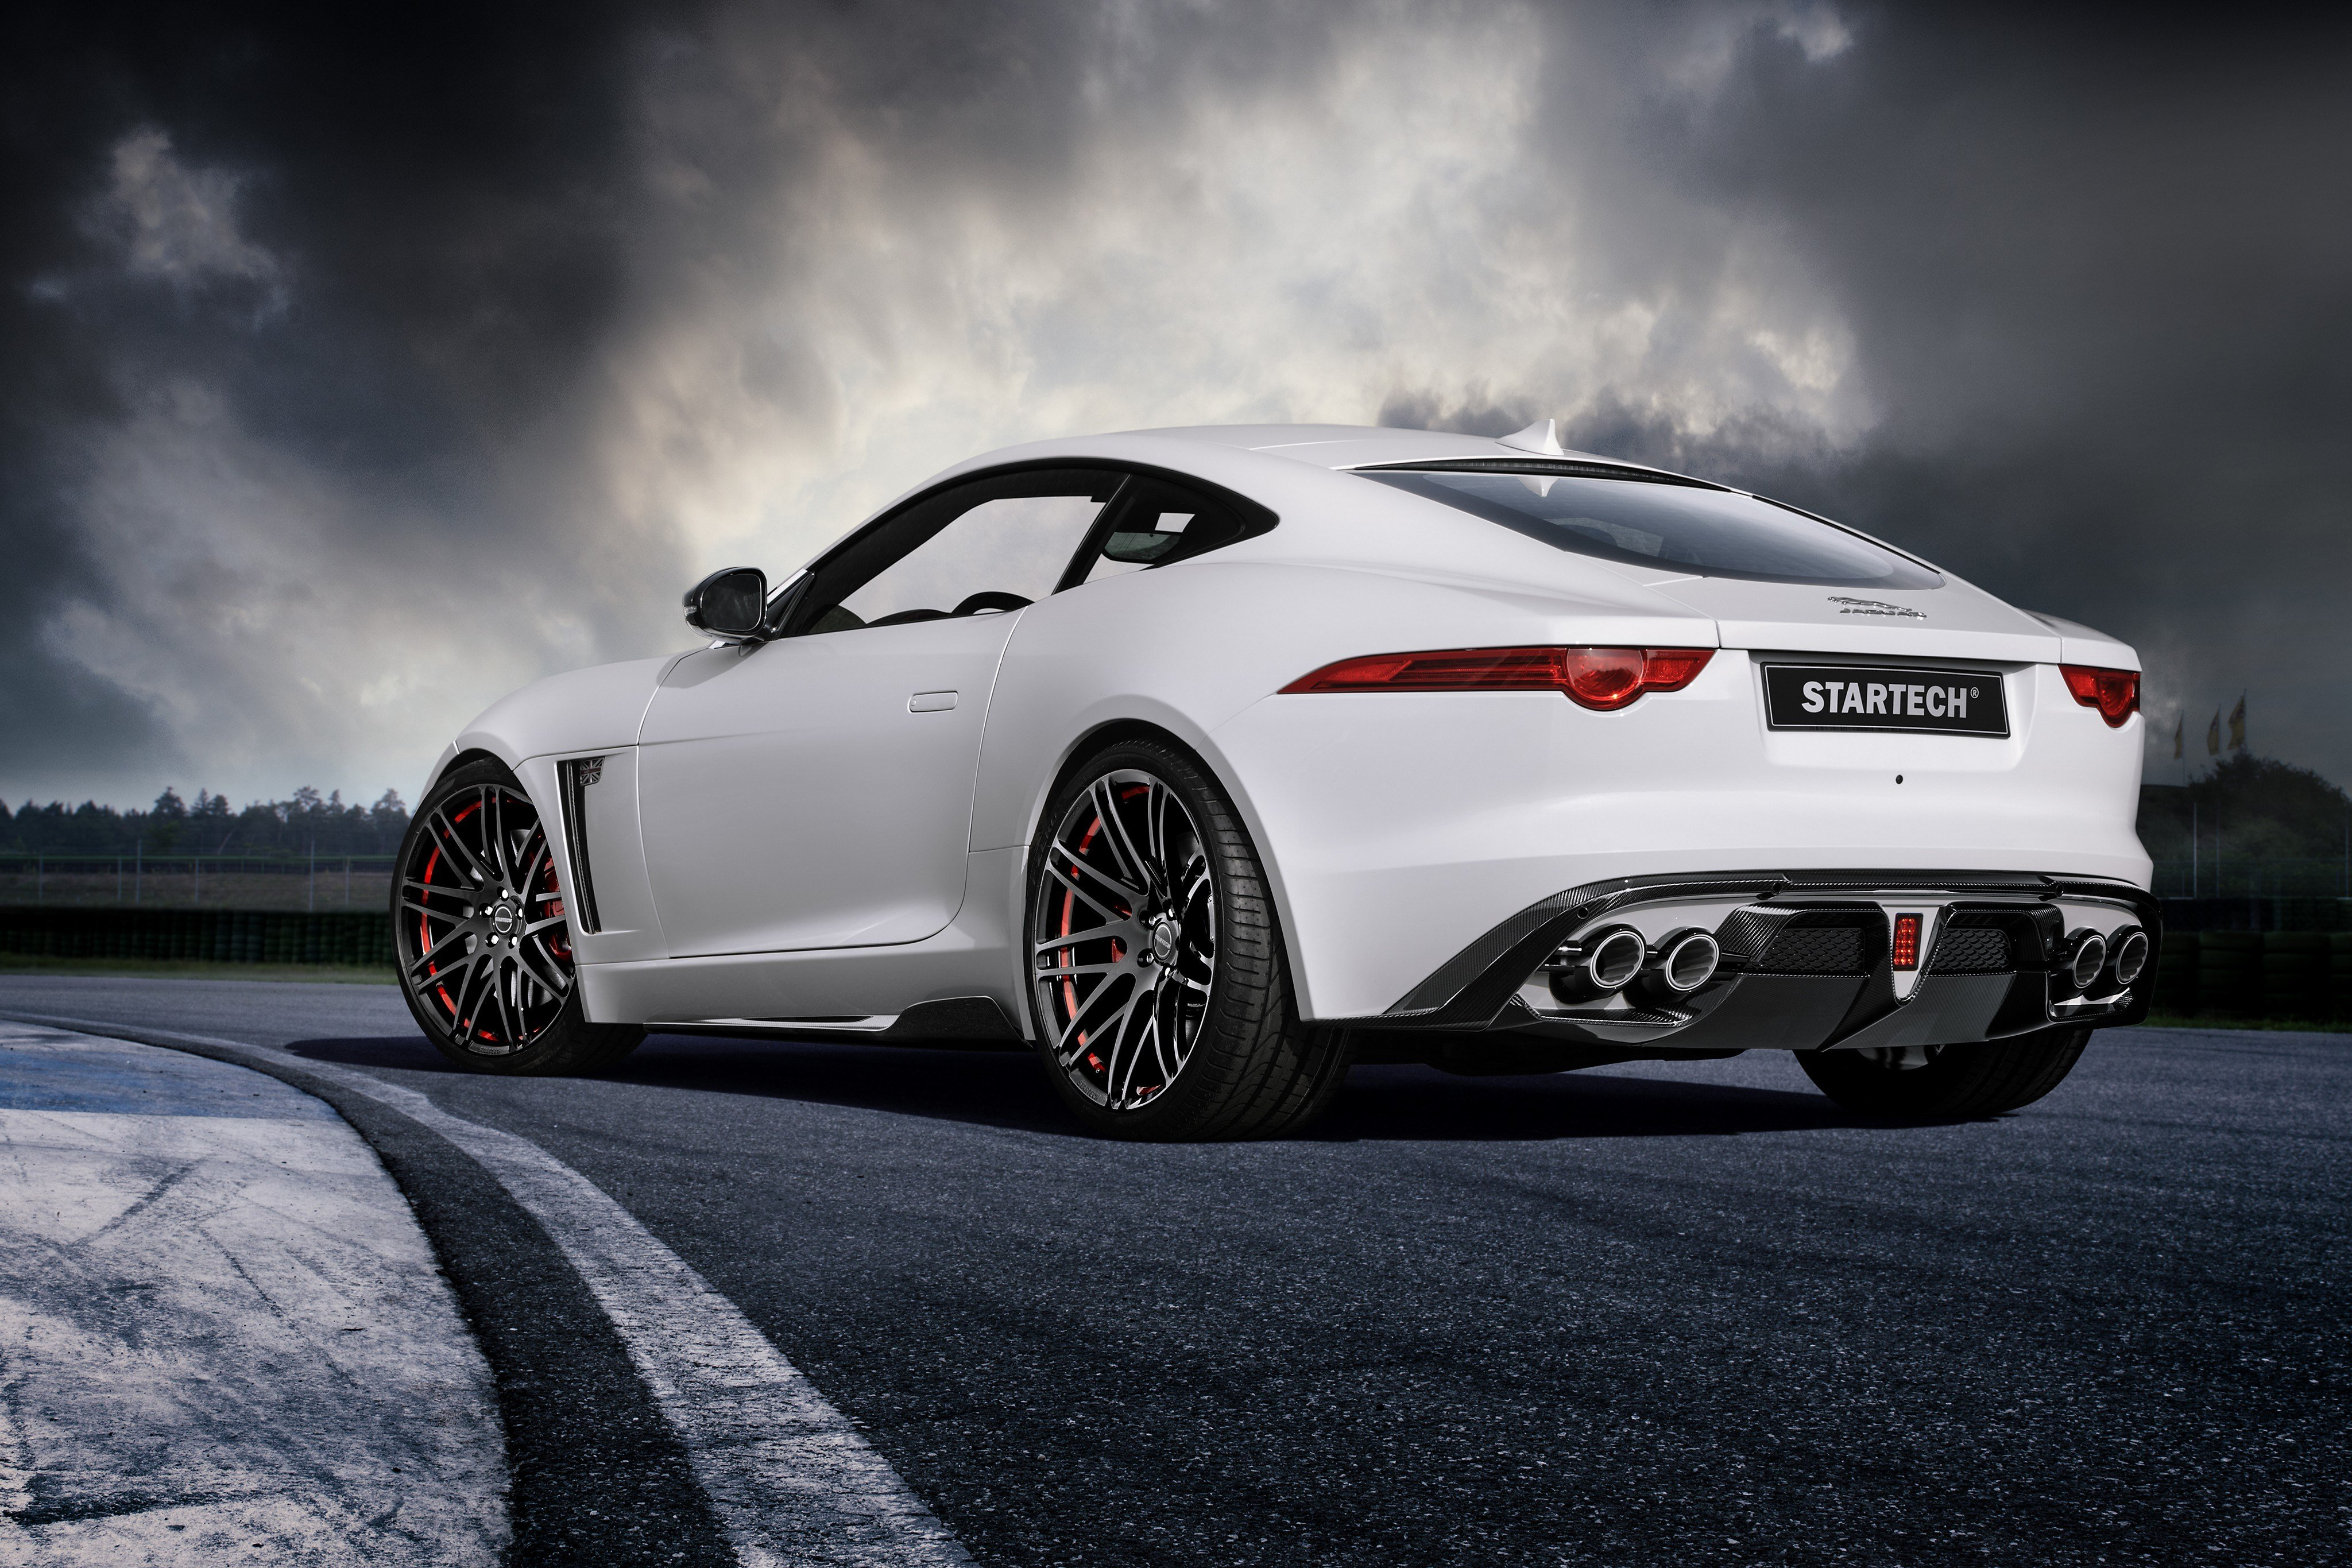 New Wallpaper Jaguar F Type Coupe White Startech Cars On This Month